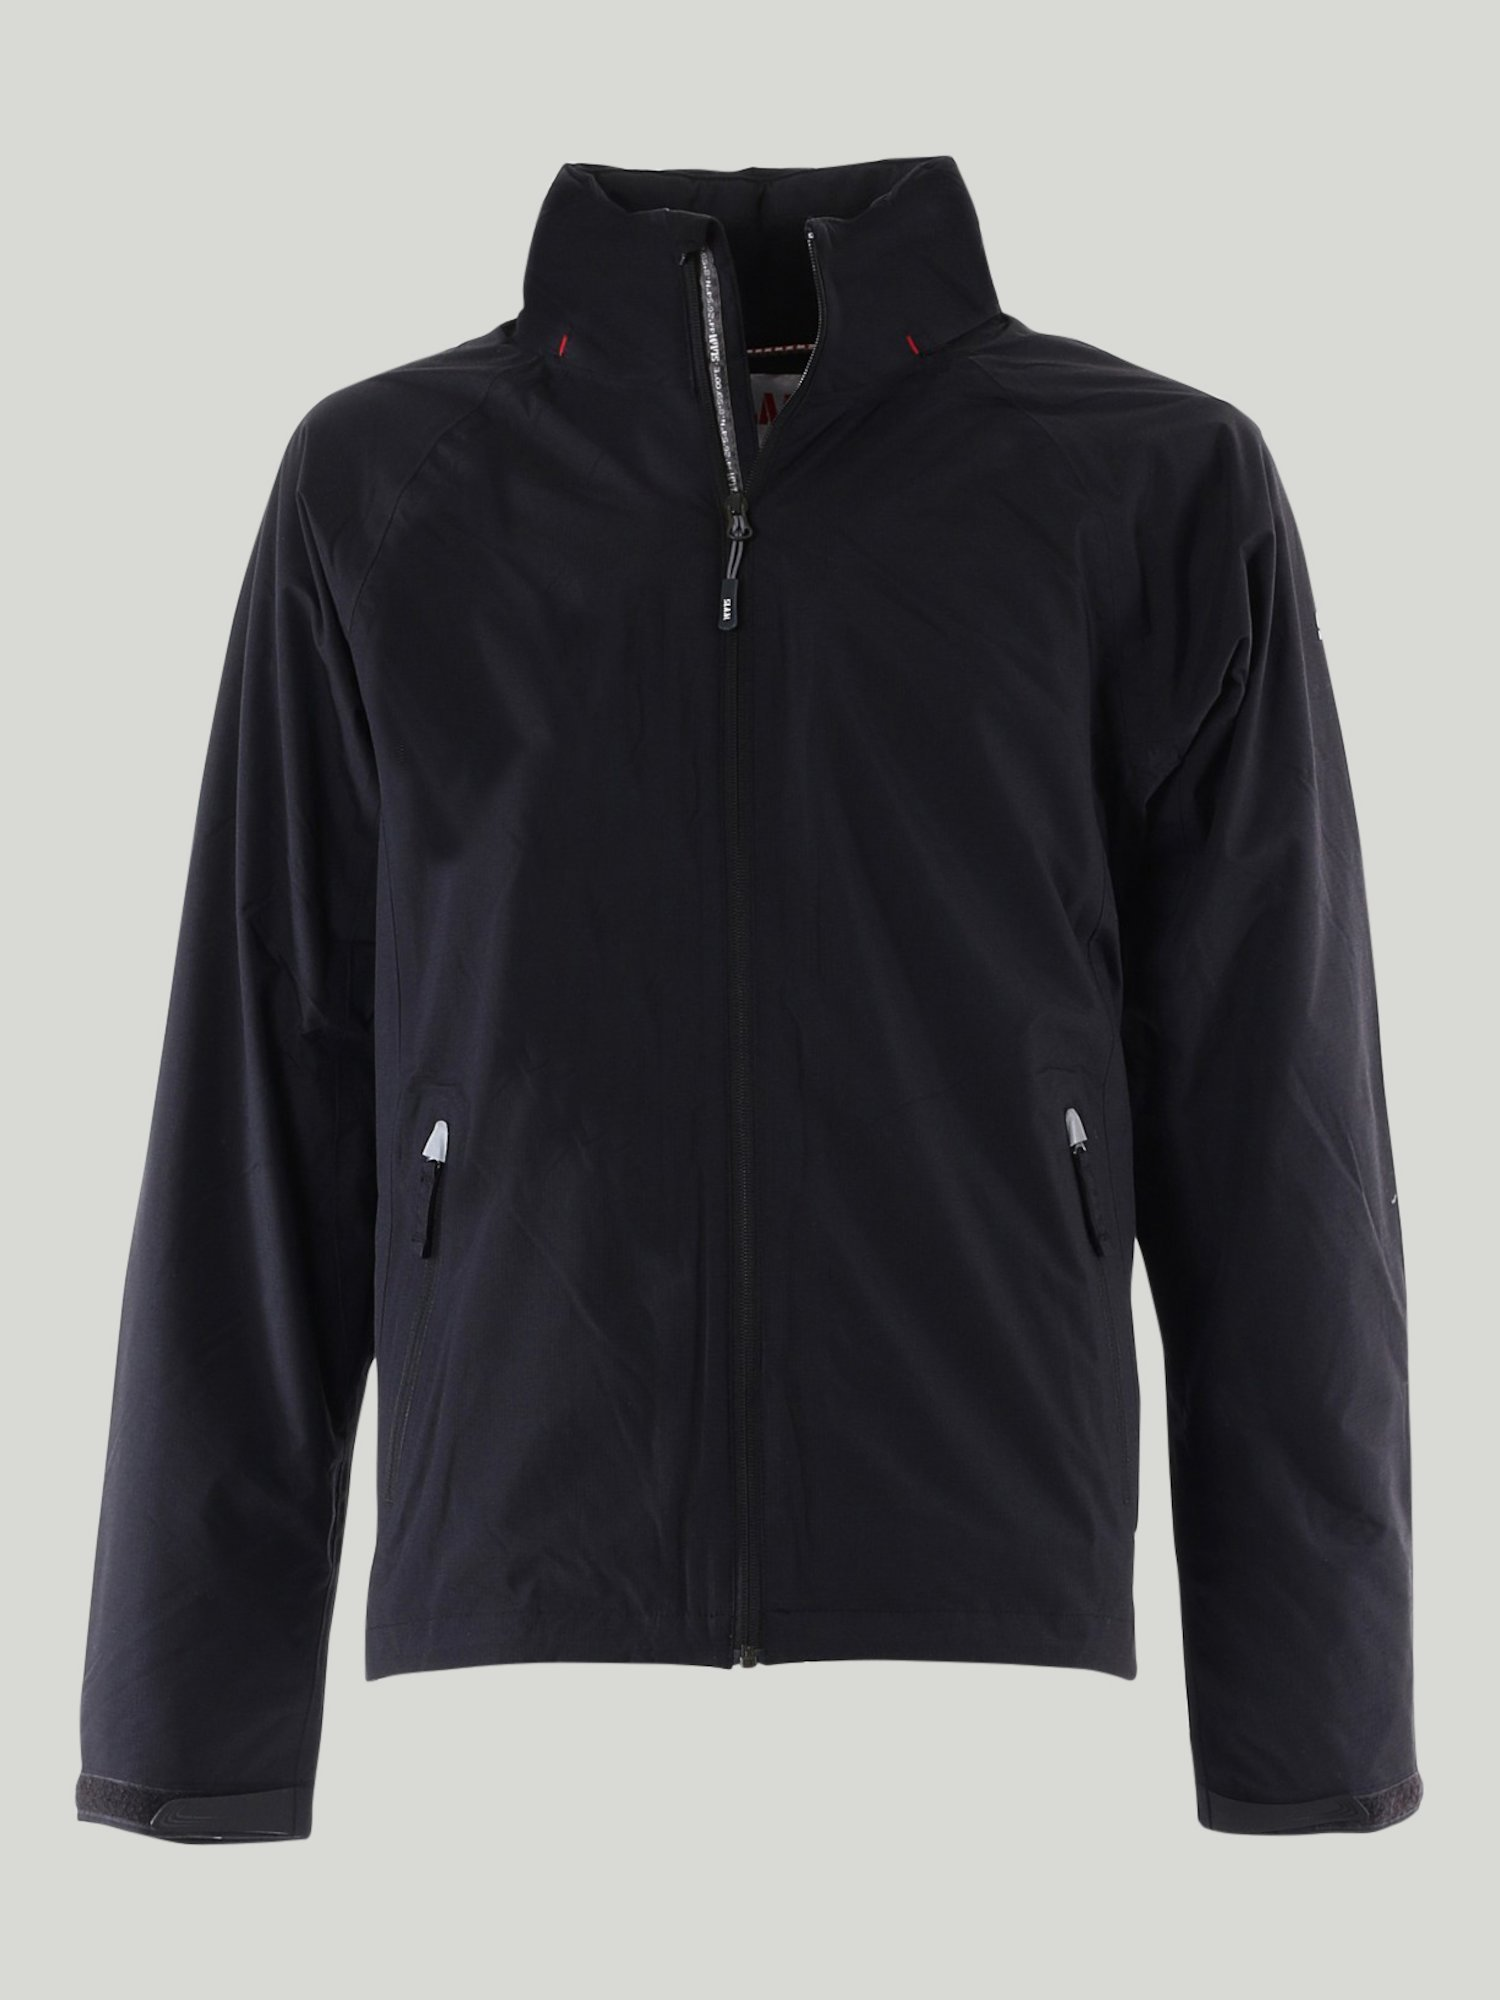 Windjacke Portocervo - Black